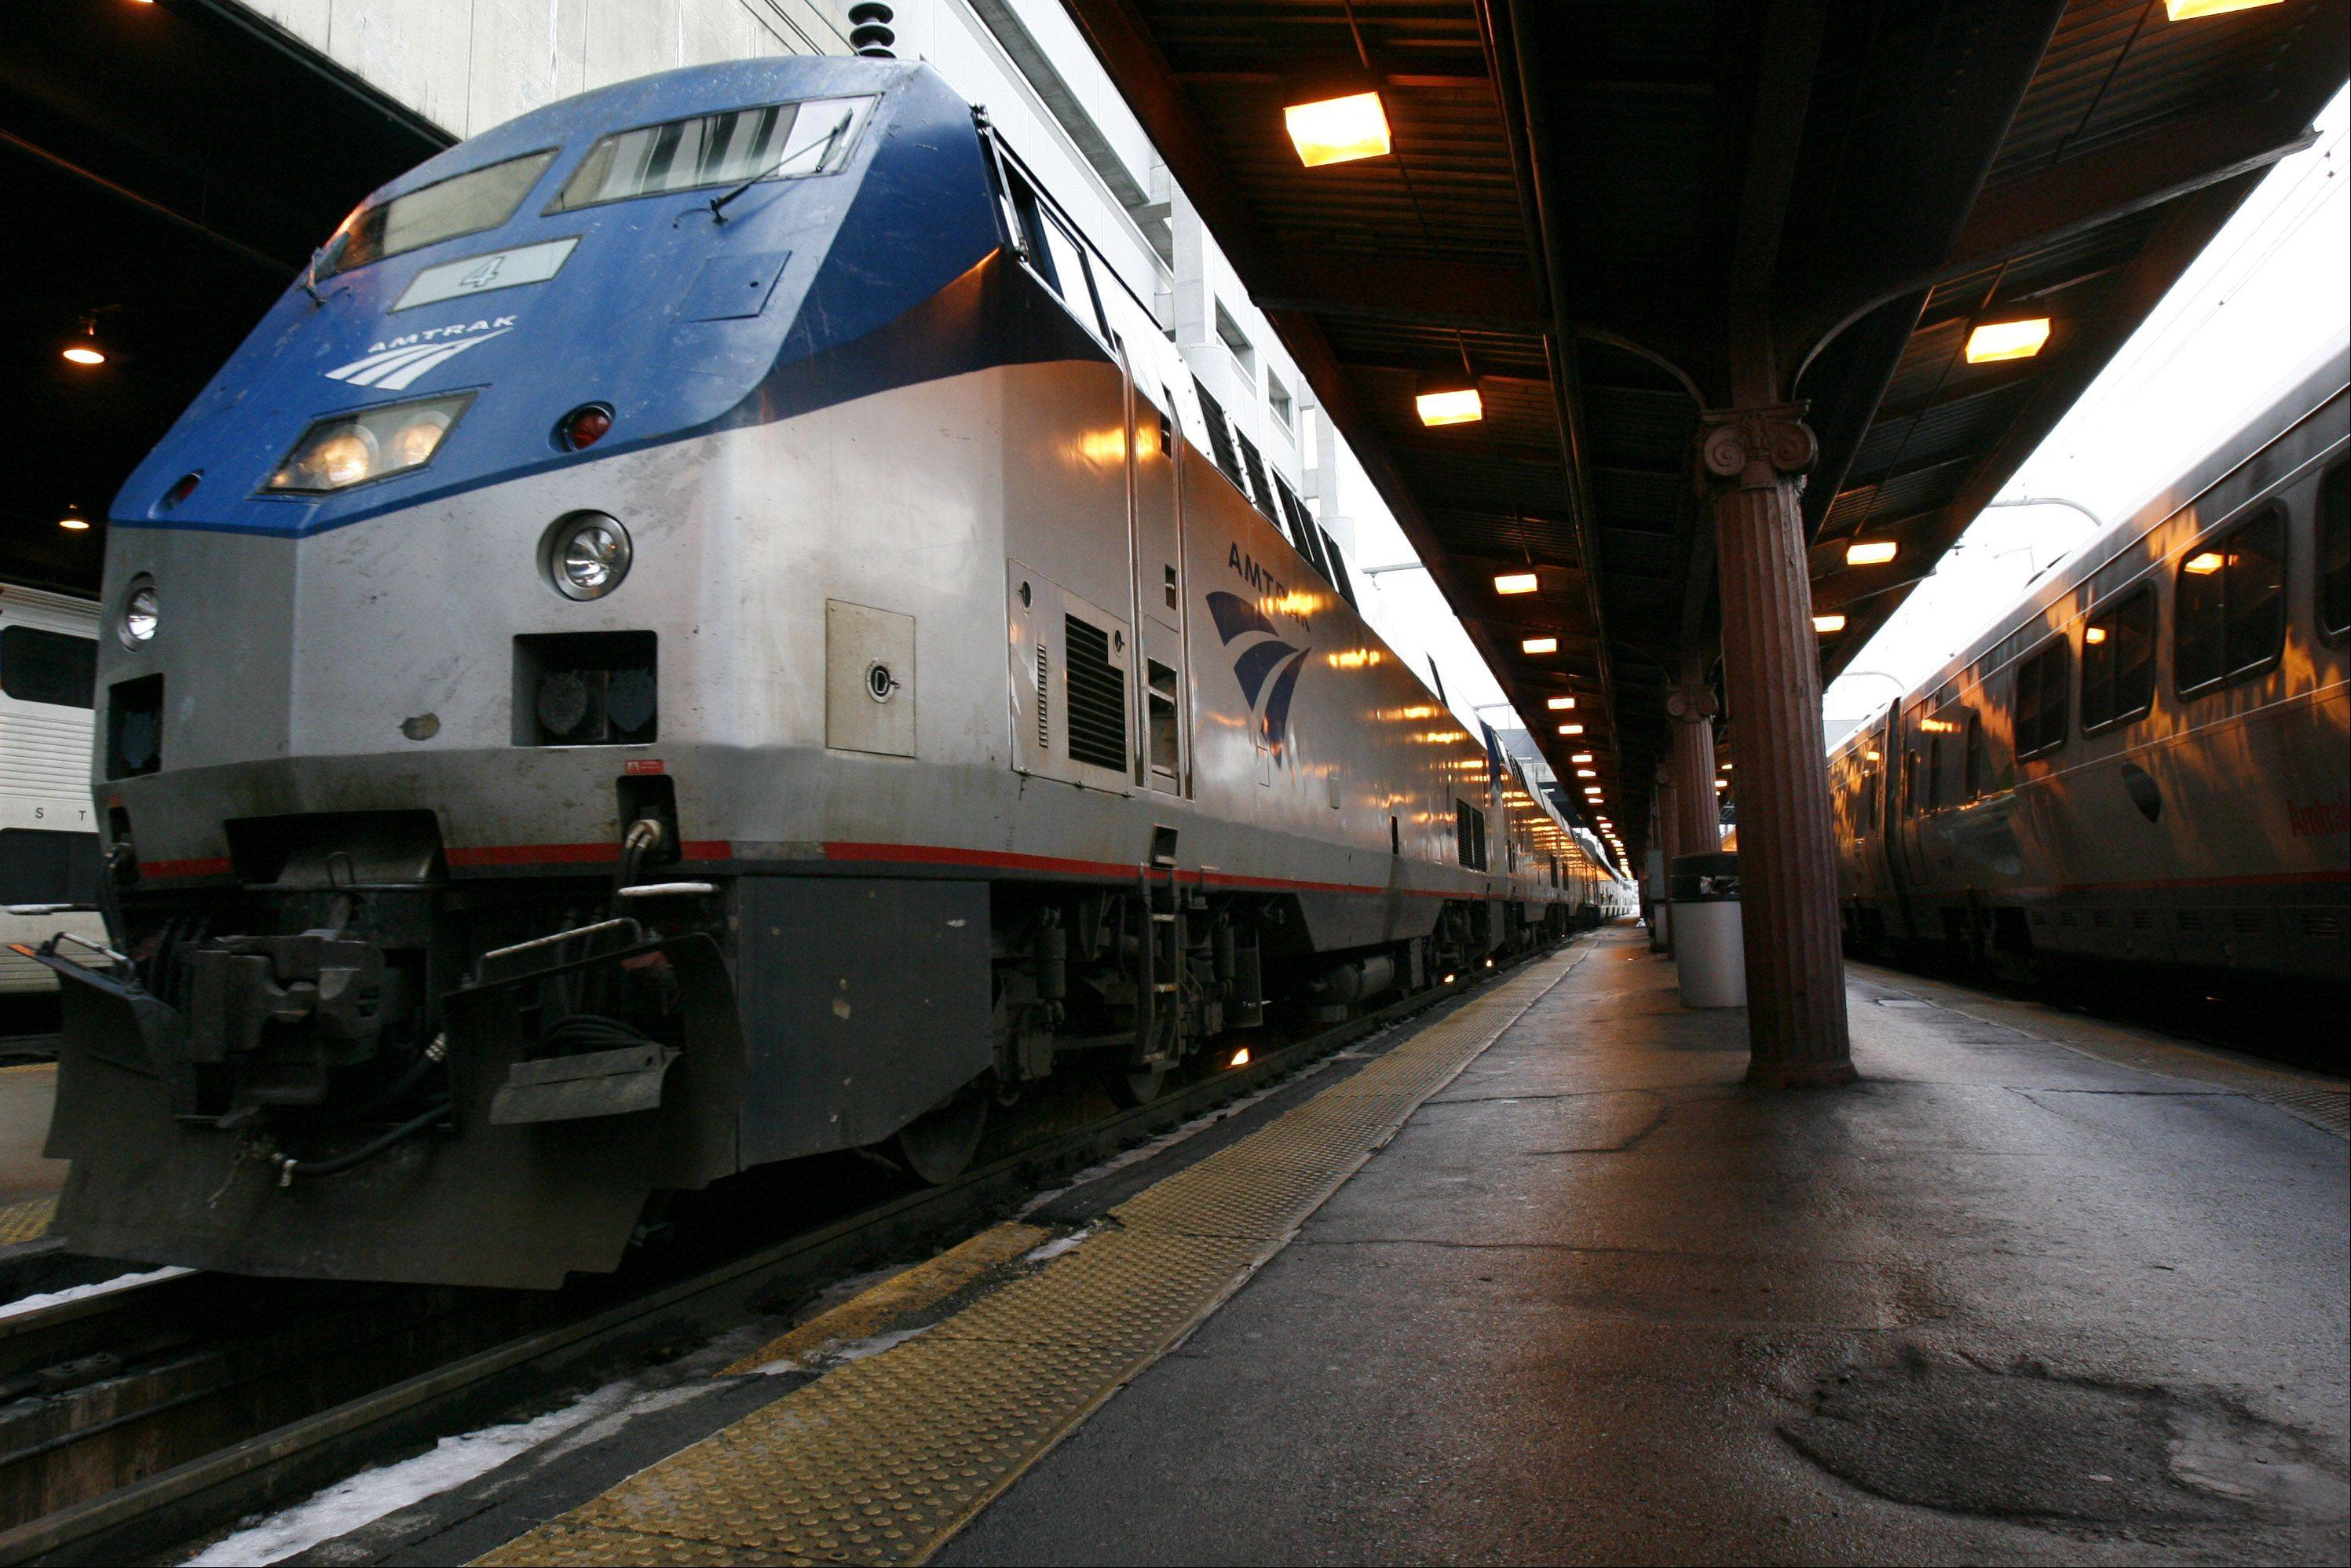 Amtrak is giving travelers in Illinois more options on the Sunday after Thanksgiving, adding service on the Chicago-to-Quincy corridor that has stops in Galesburg and Macomb.